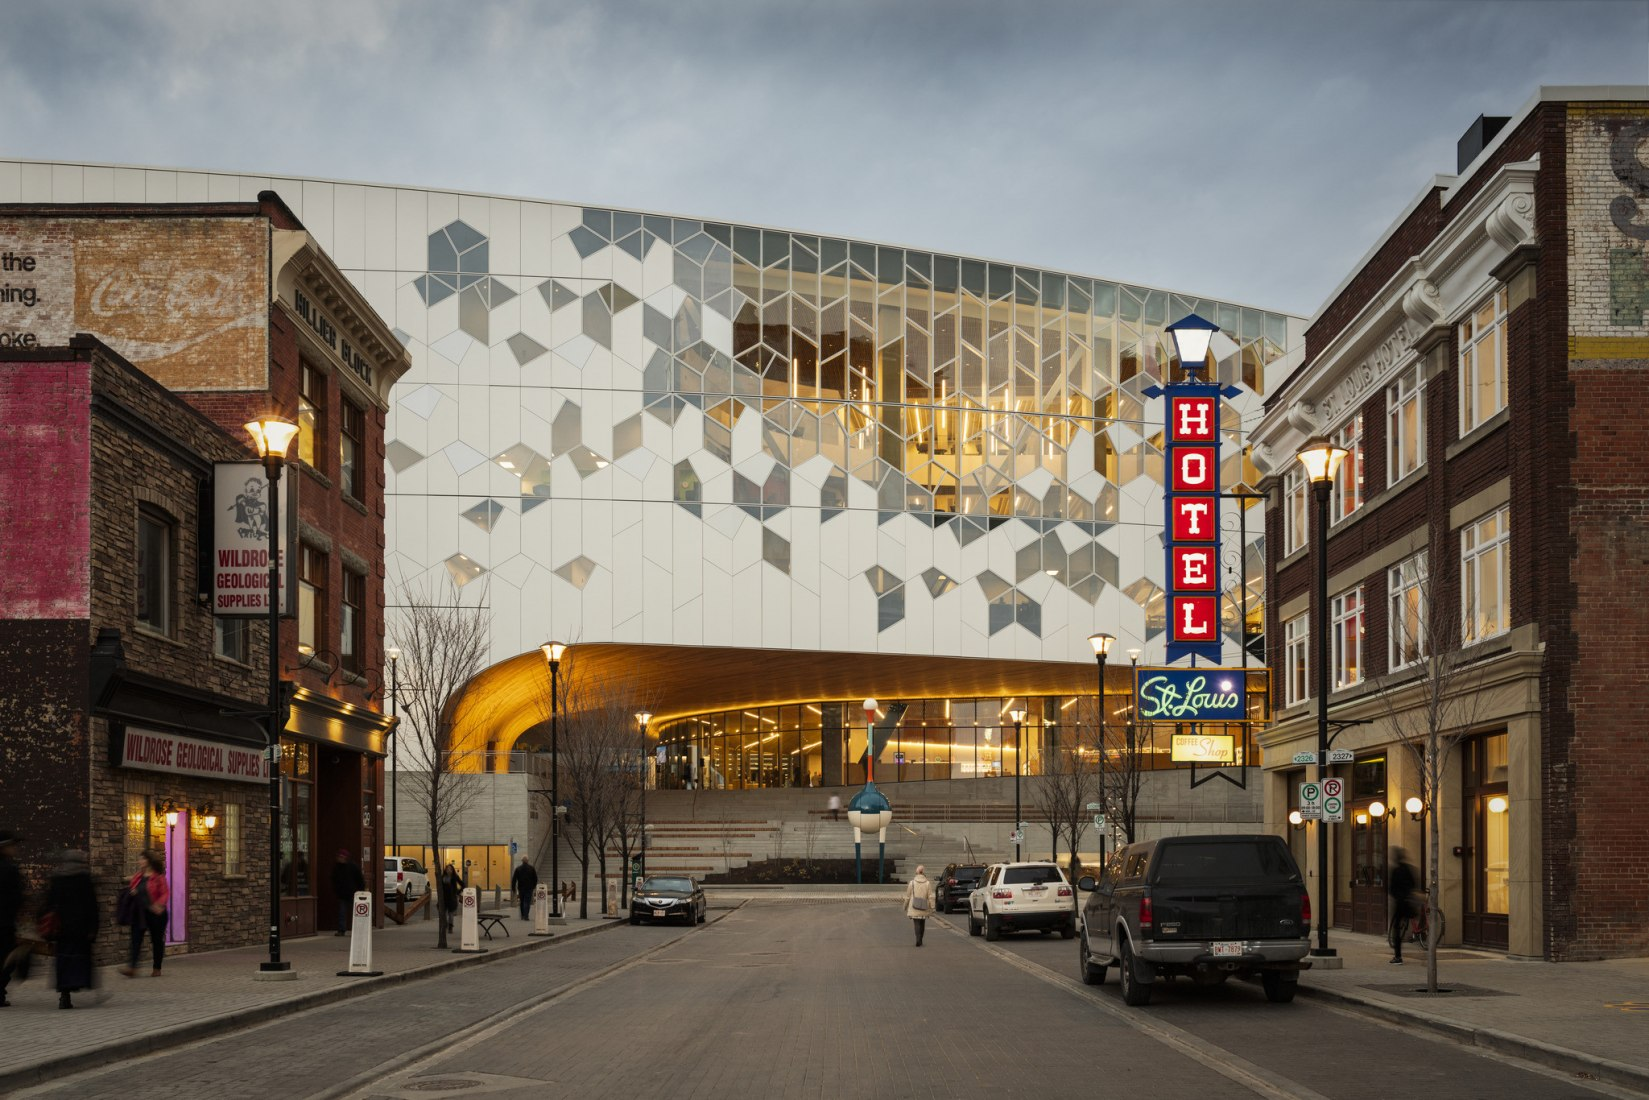 Calgary's new Central Library by Snøhetta + DIALOG. Photograph by Michael Grimm